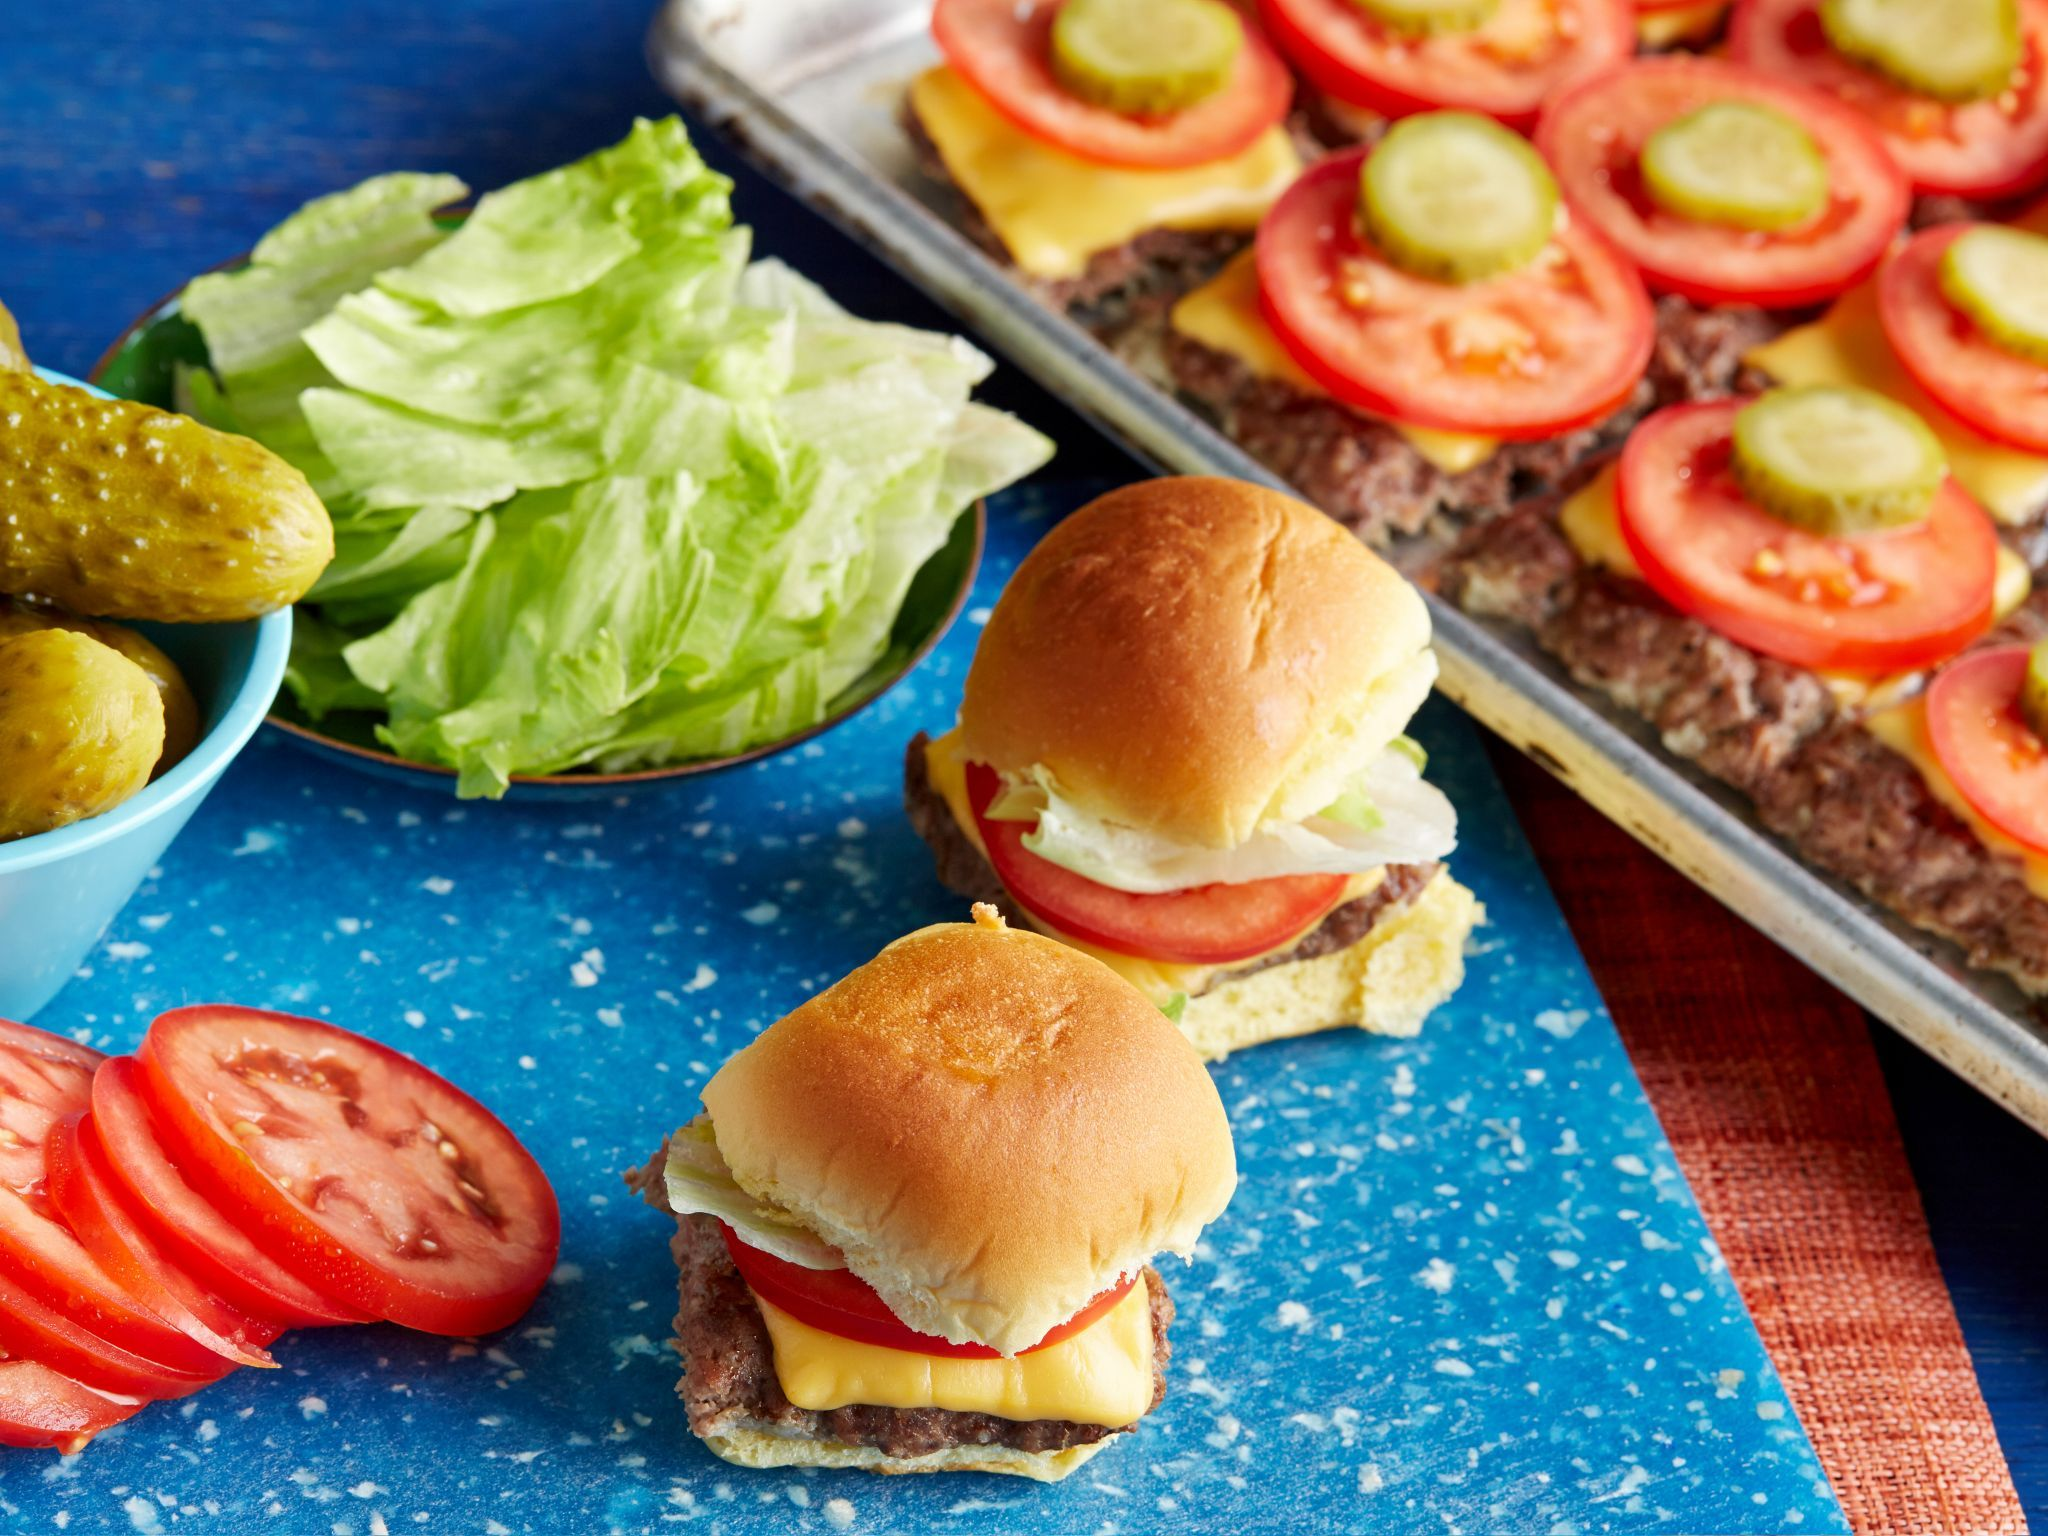 Super bowl dinner recipes food network beef sliders crowd and beef sliders for a crowd recipe food network kitchen food network forumfinder Gallery